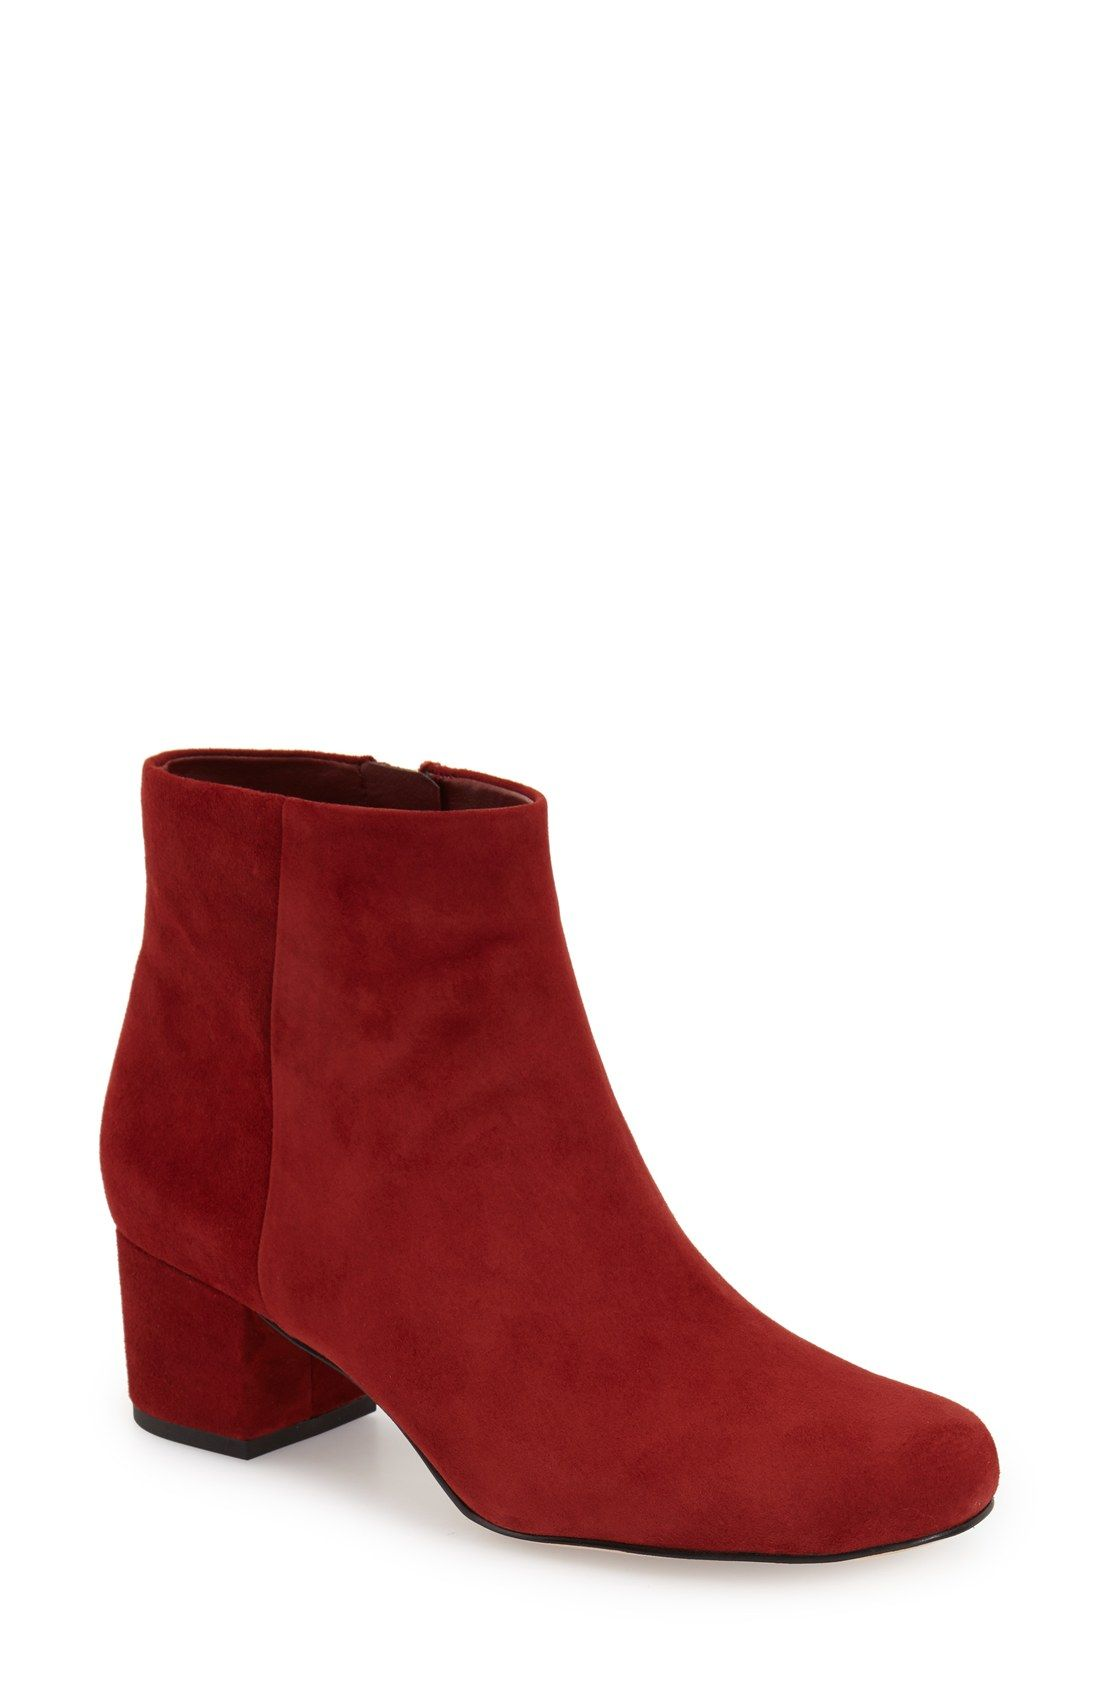 614bb72d8 The angels want to wear my red shoes...Sam Edelman  Edith  Ankle Bootie